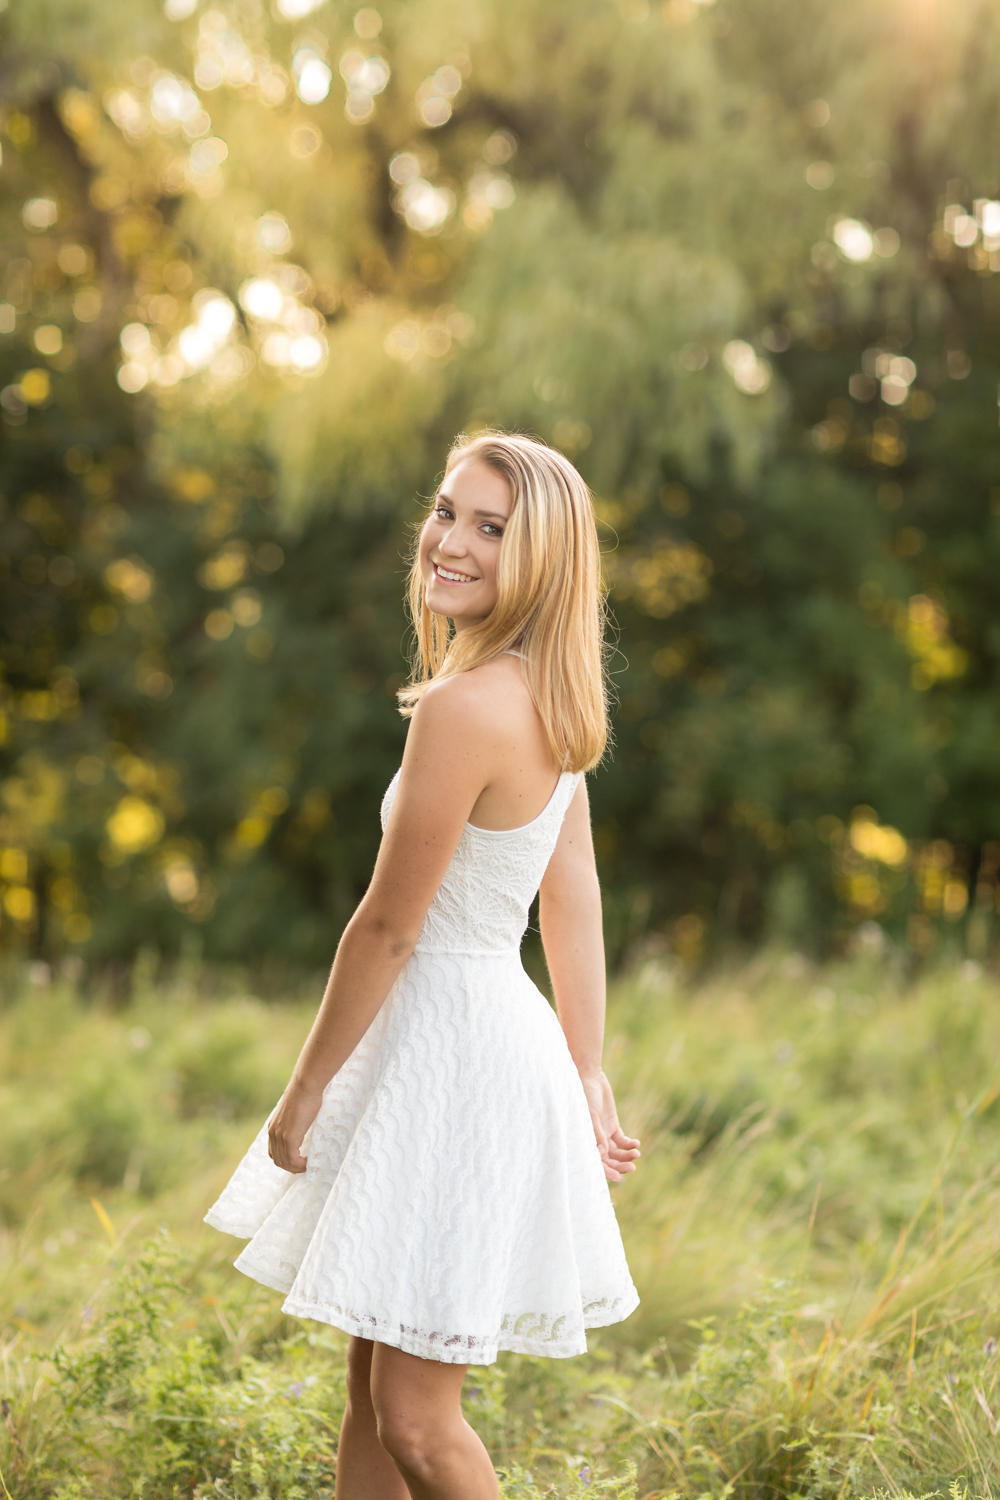 jill_hogan_senior_photography (6 of 16).jpg